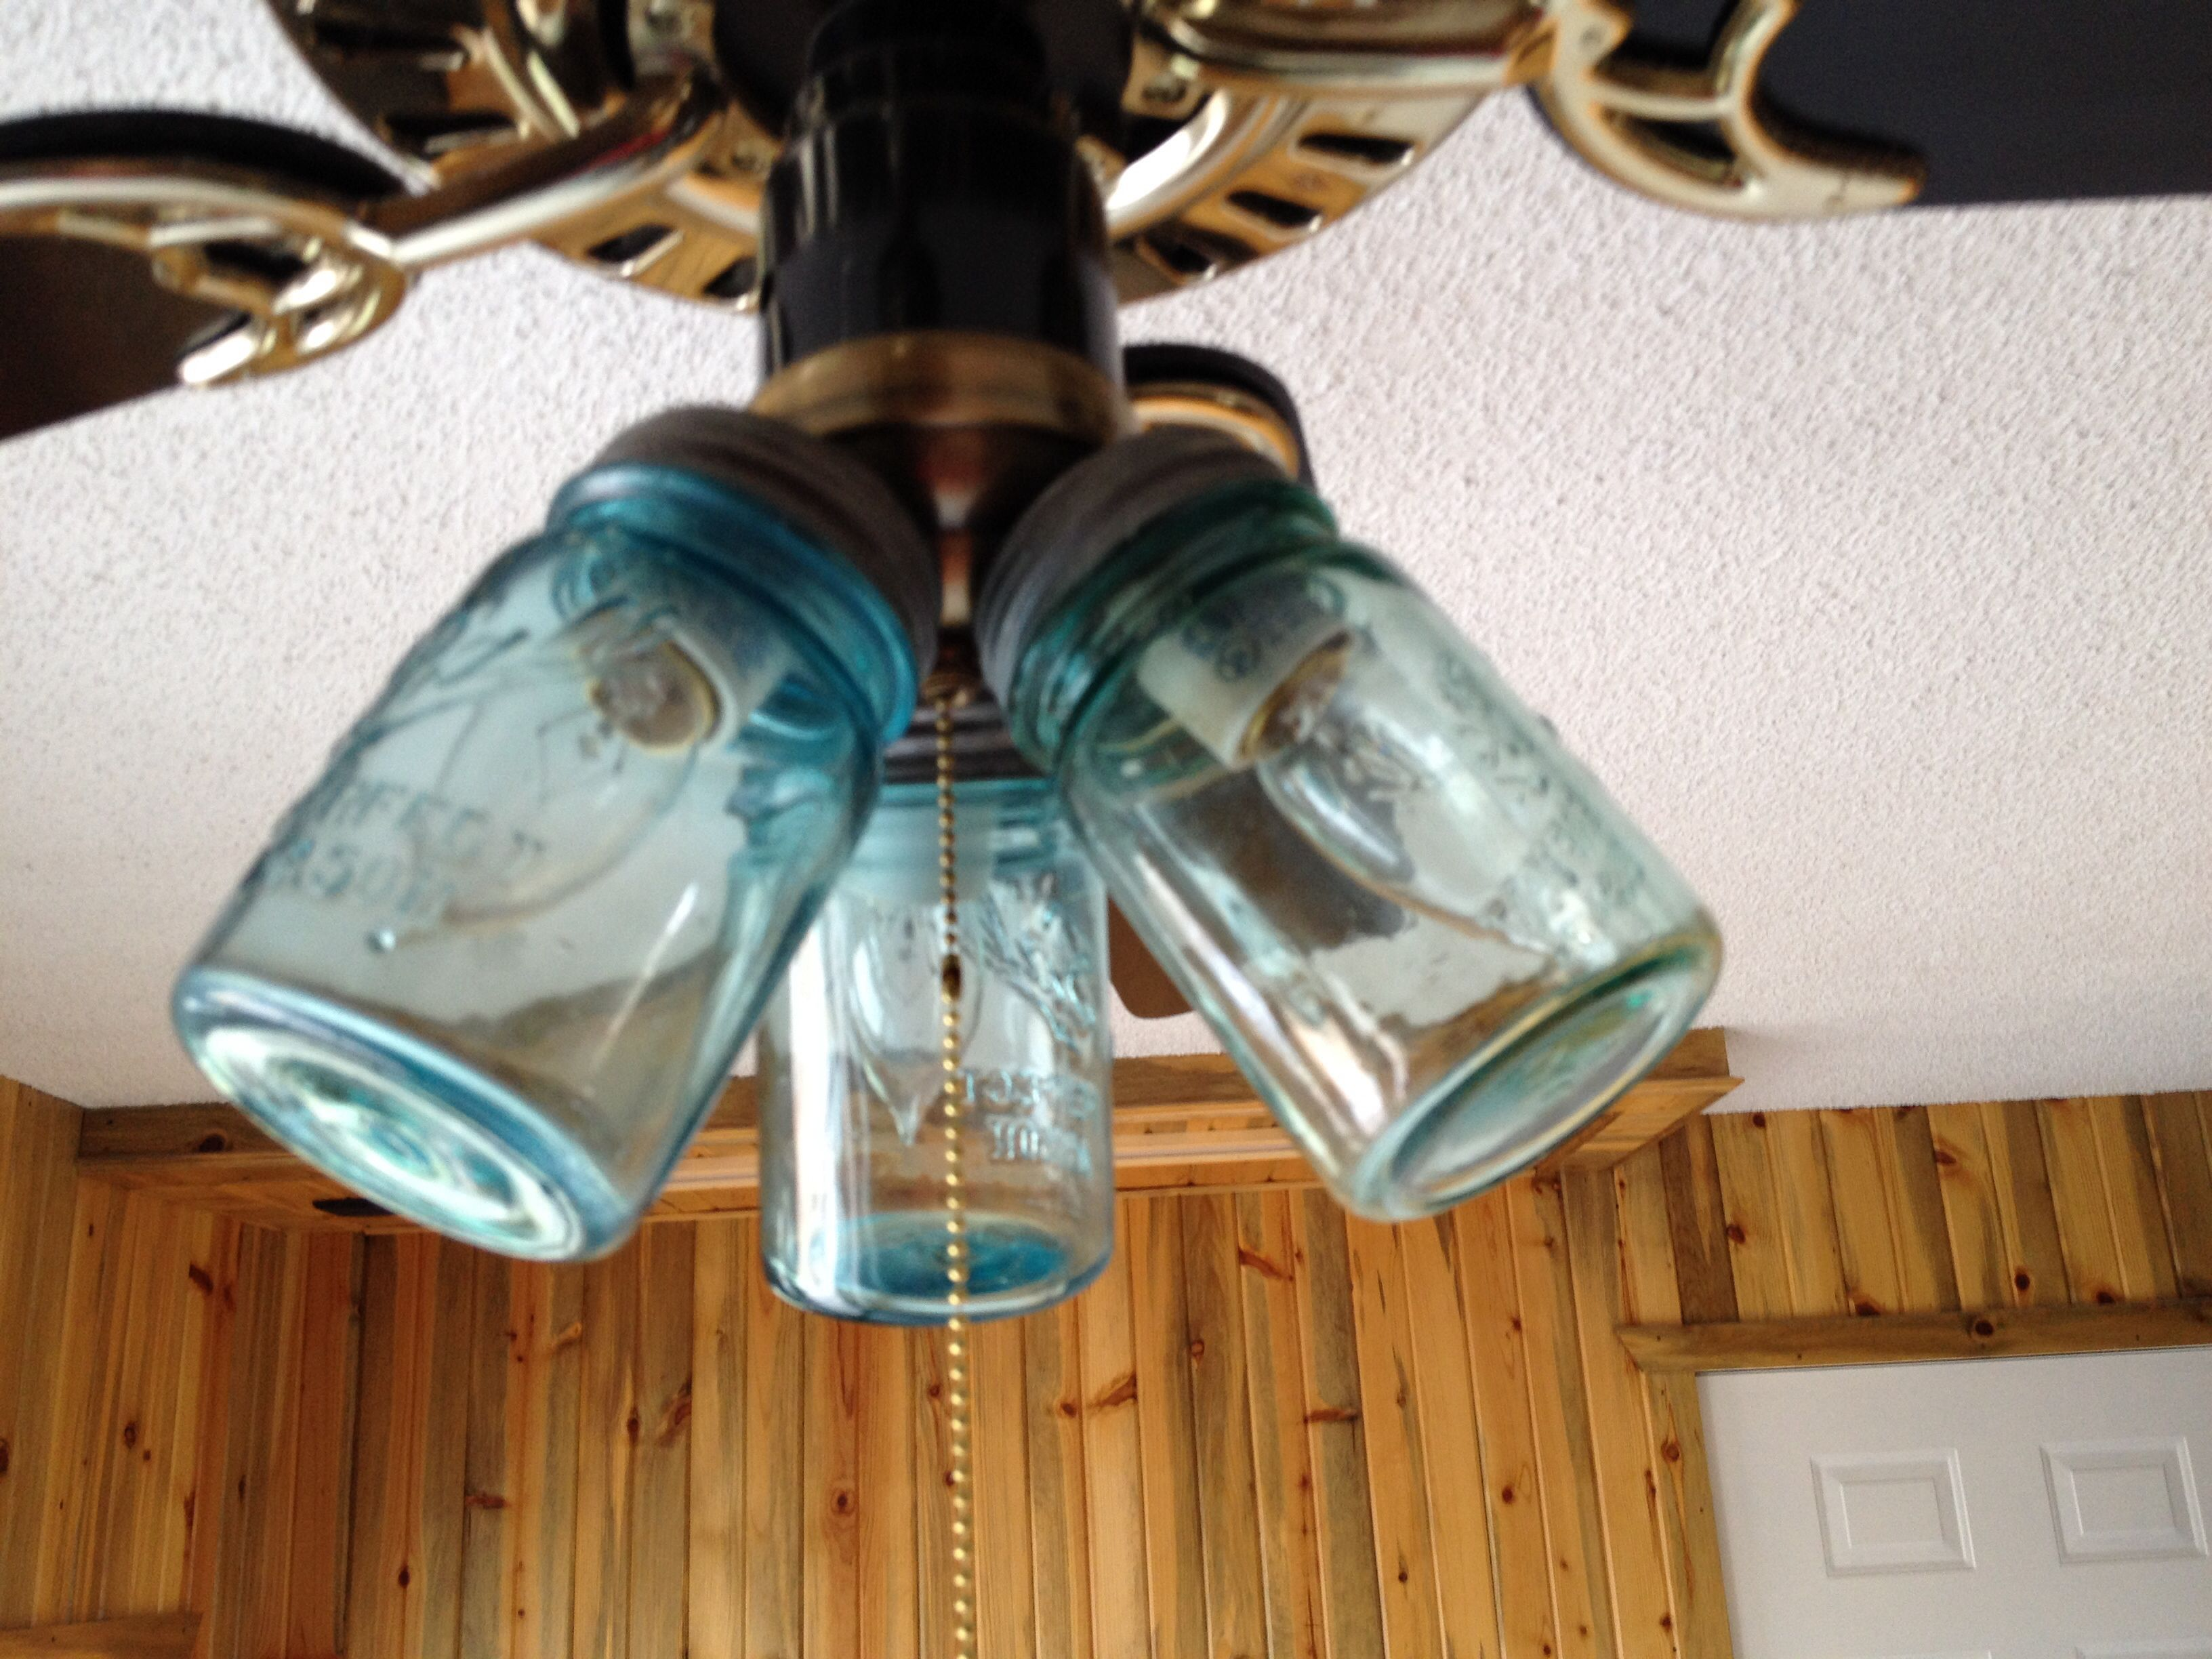 Mason Jar Ceiling Fan Light Covers